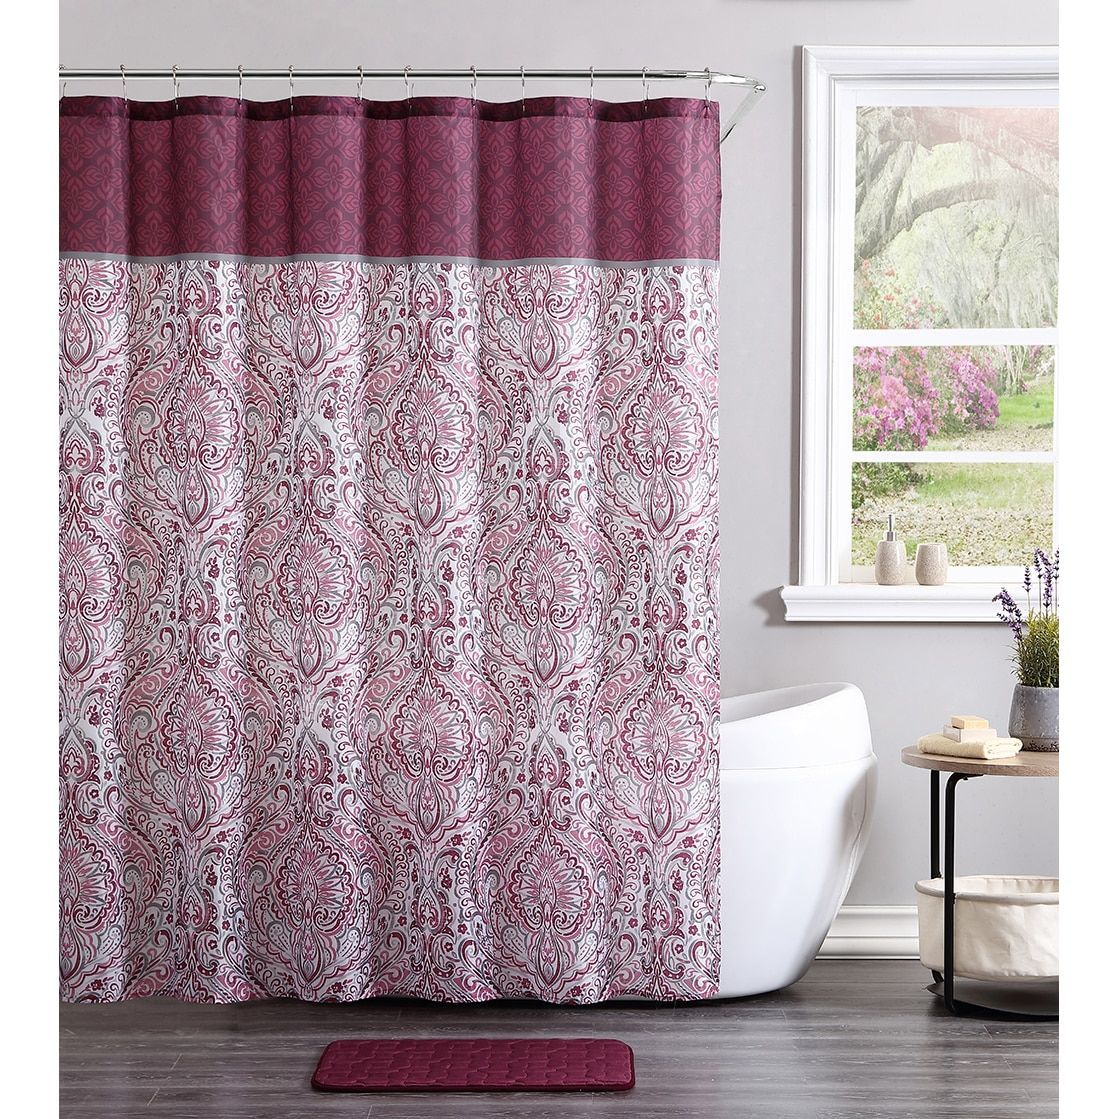 Vcny home ava piece shower curtain and bath set products